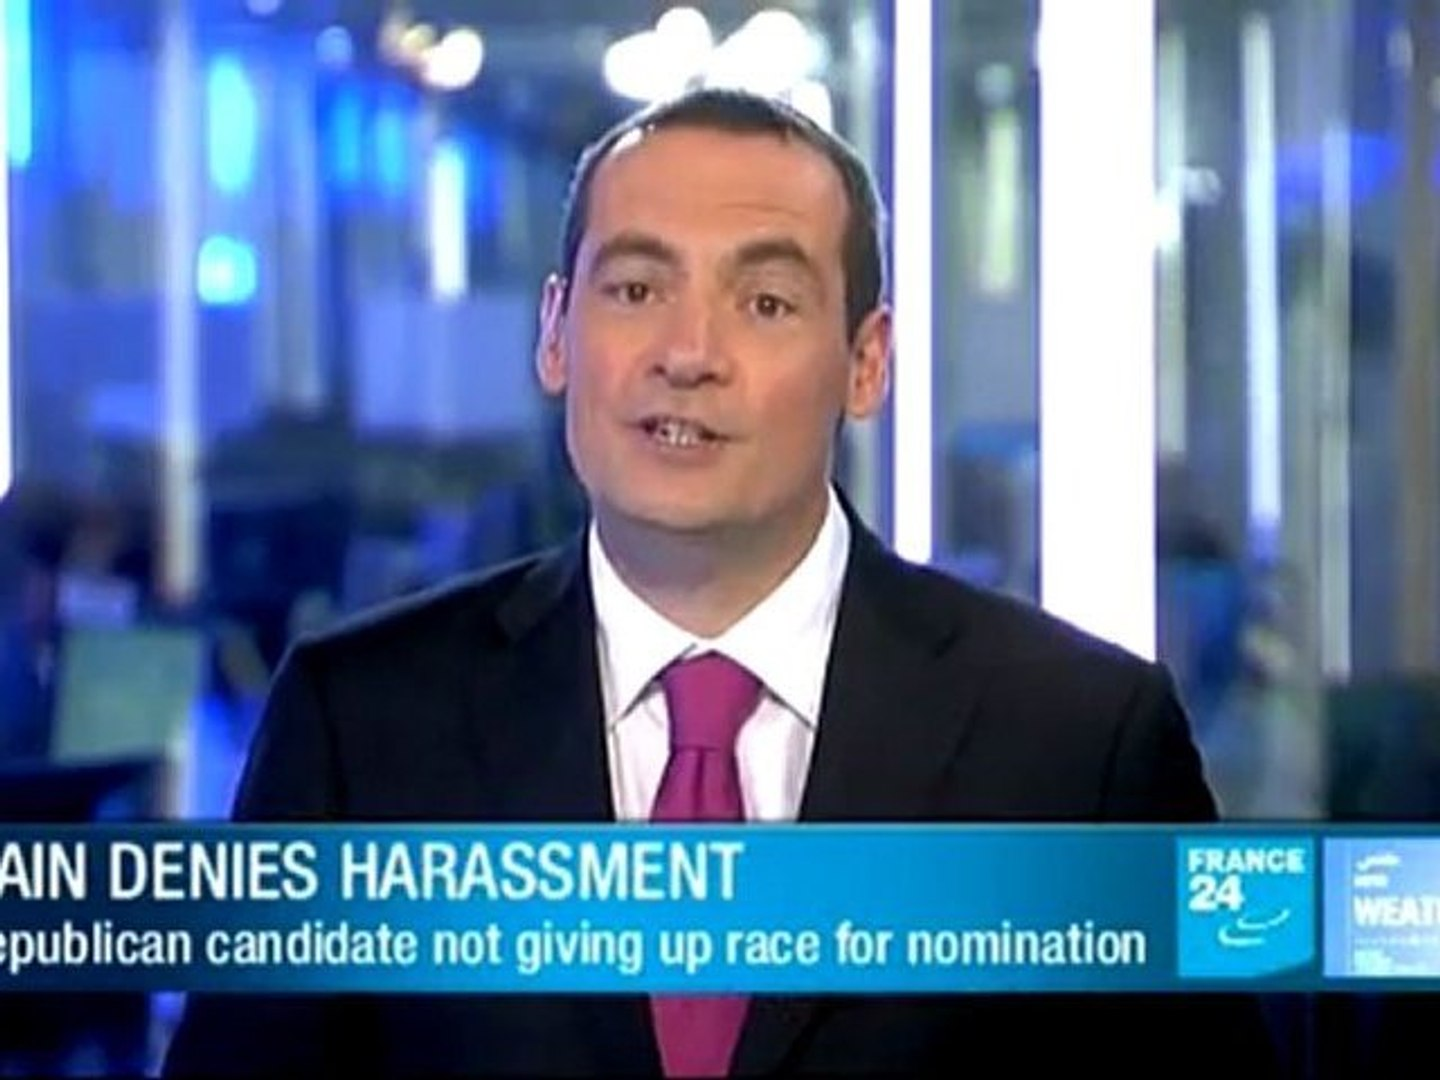 07:14AM FRANCE 24's international news flash